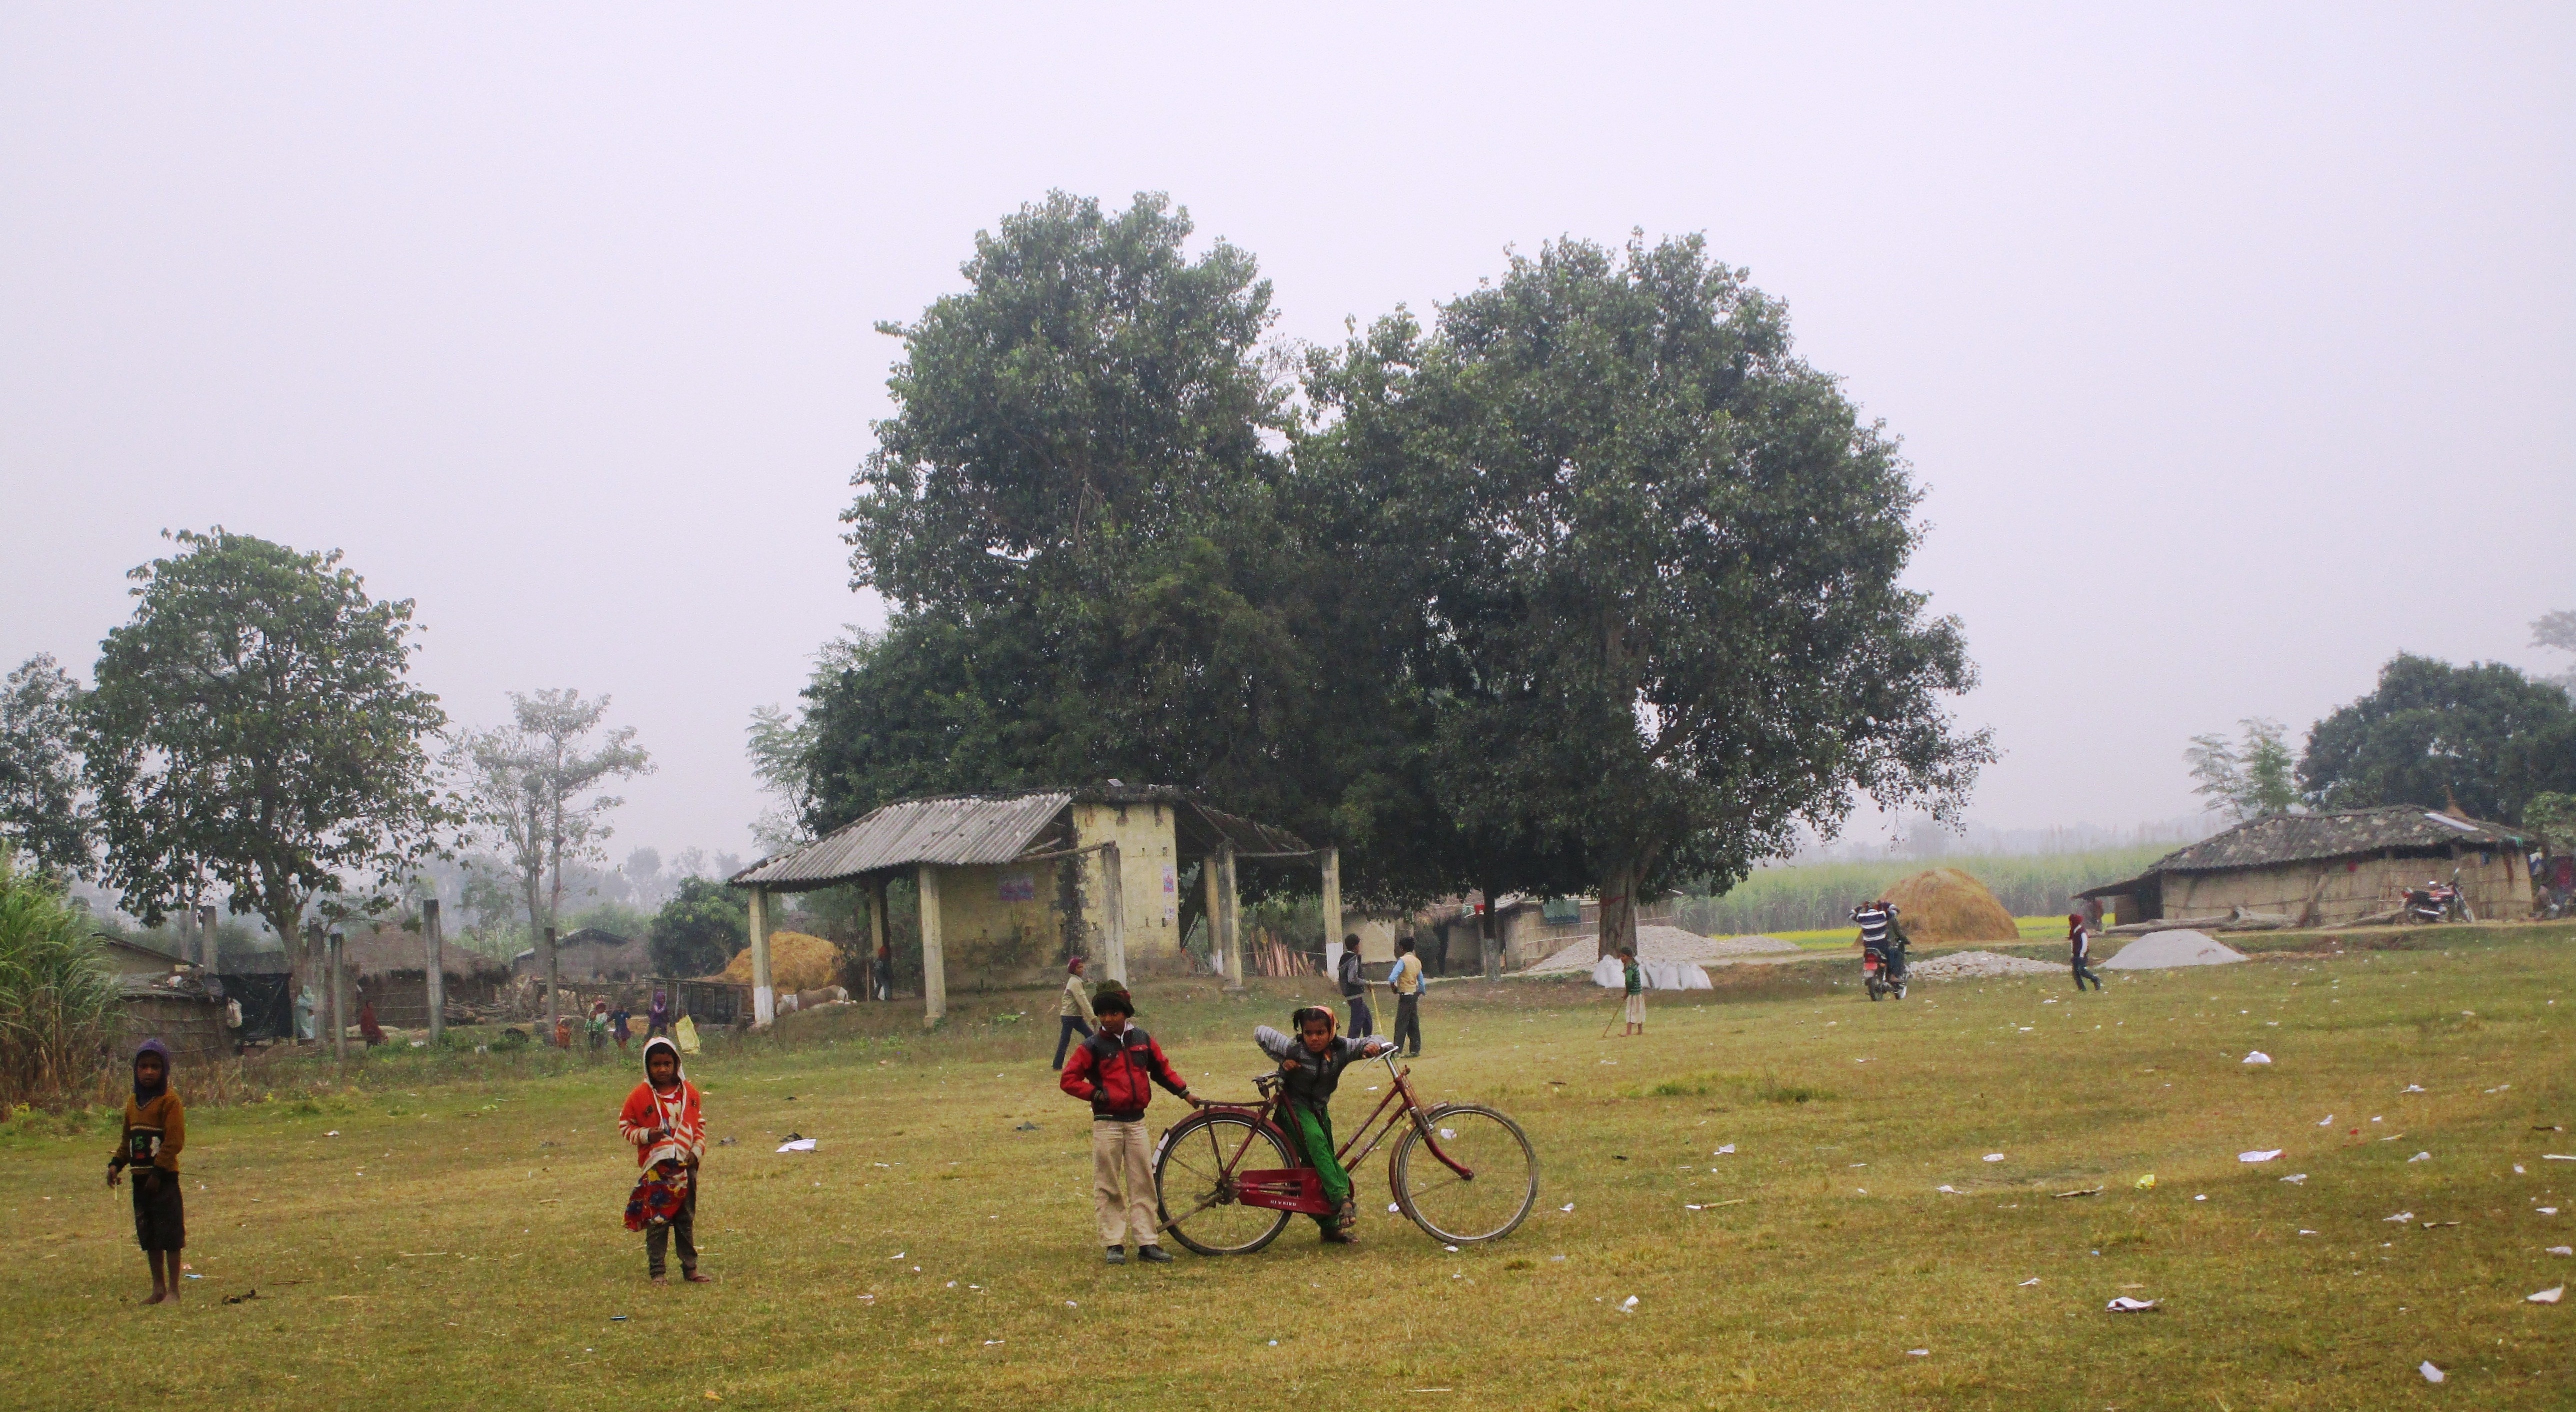 Susta village, a disputed site on the India-Nepal border.